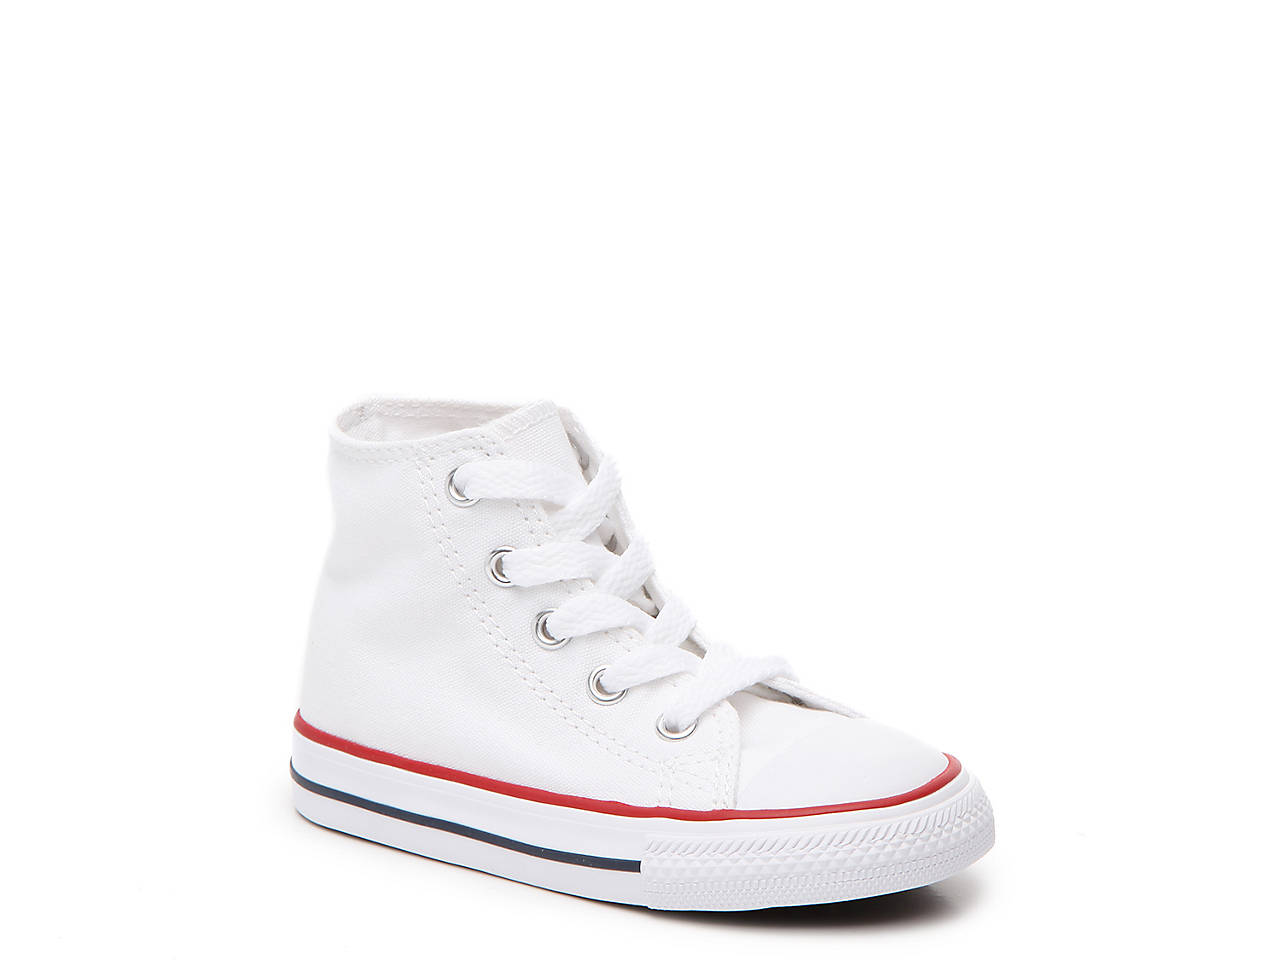 d3f1d981be02 Converse Chuck Taylor All Star Infant   Toddler High-Top Sneaker ...